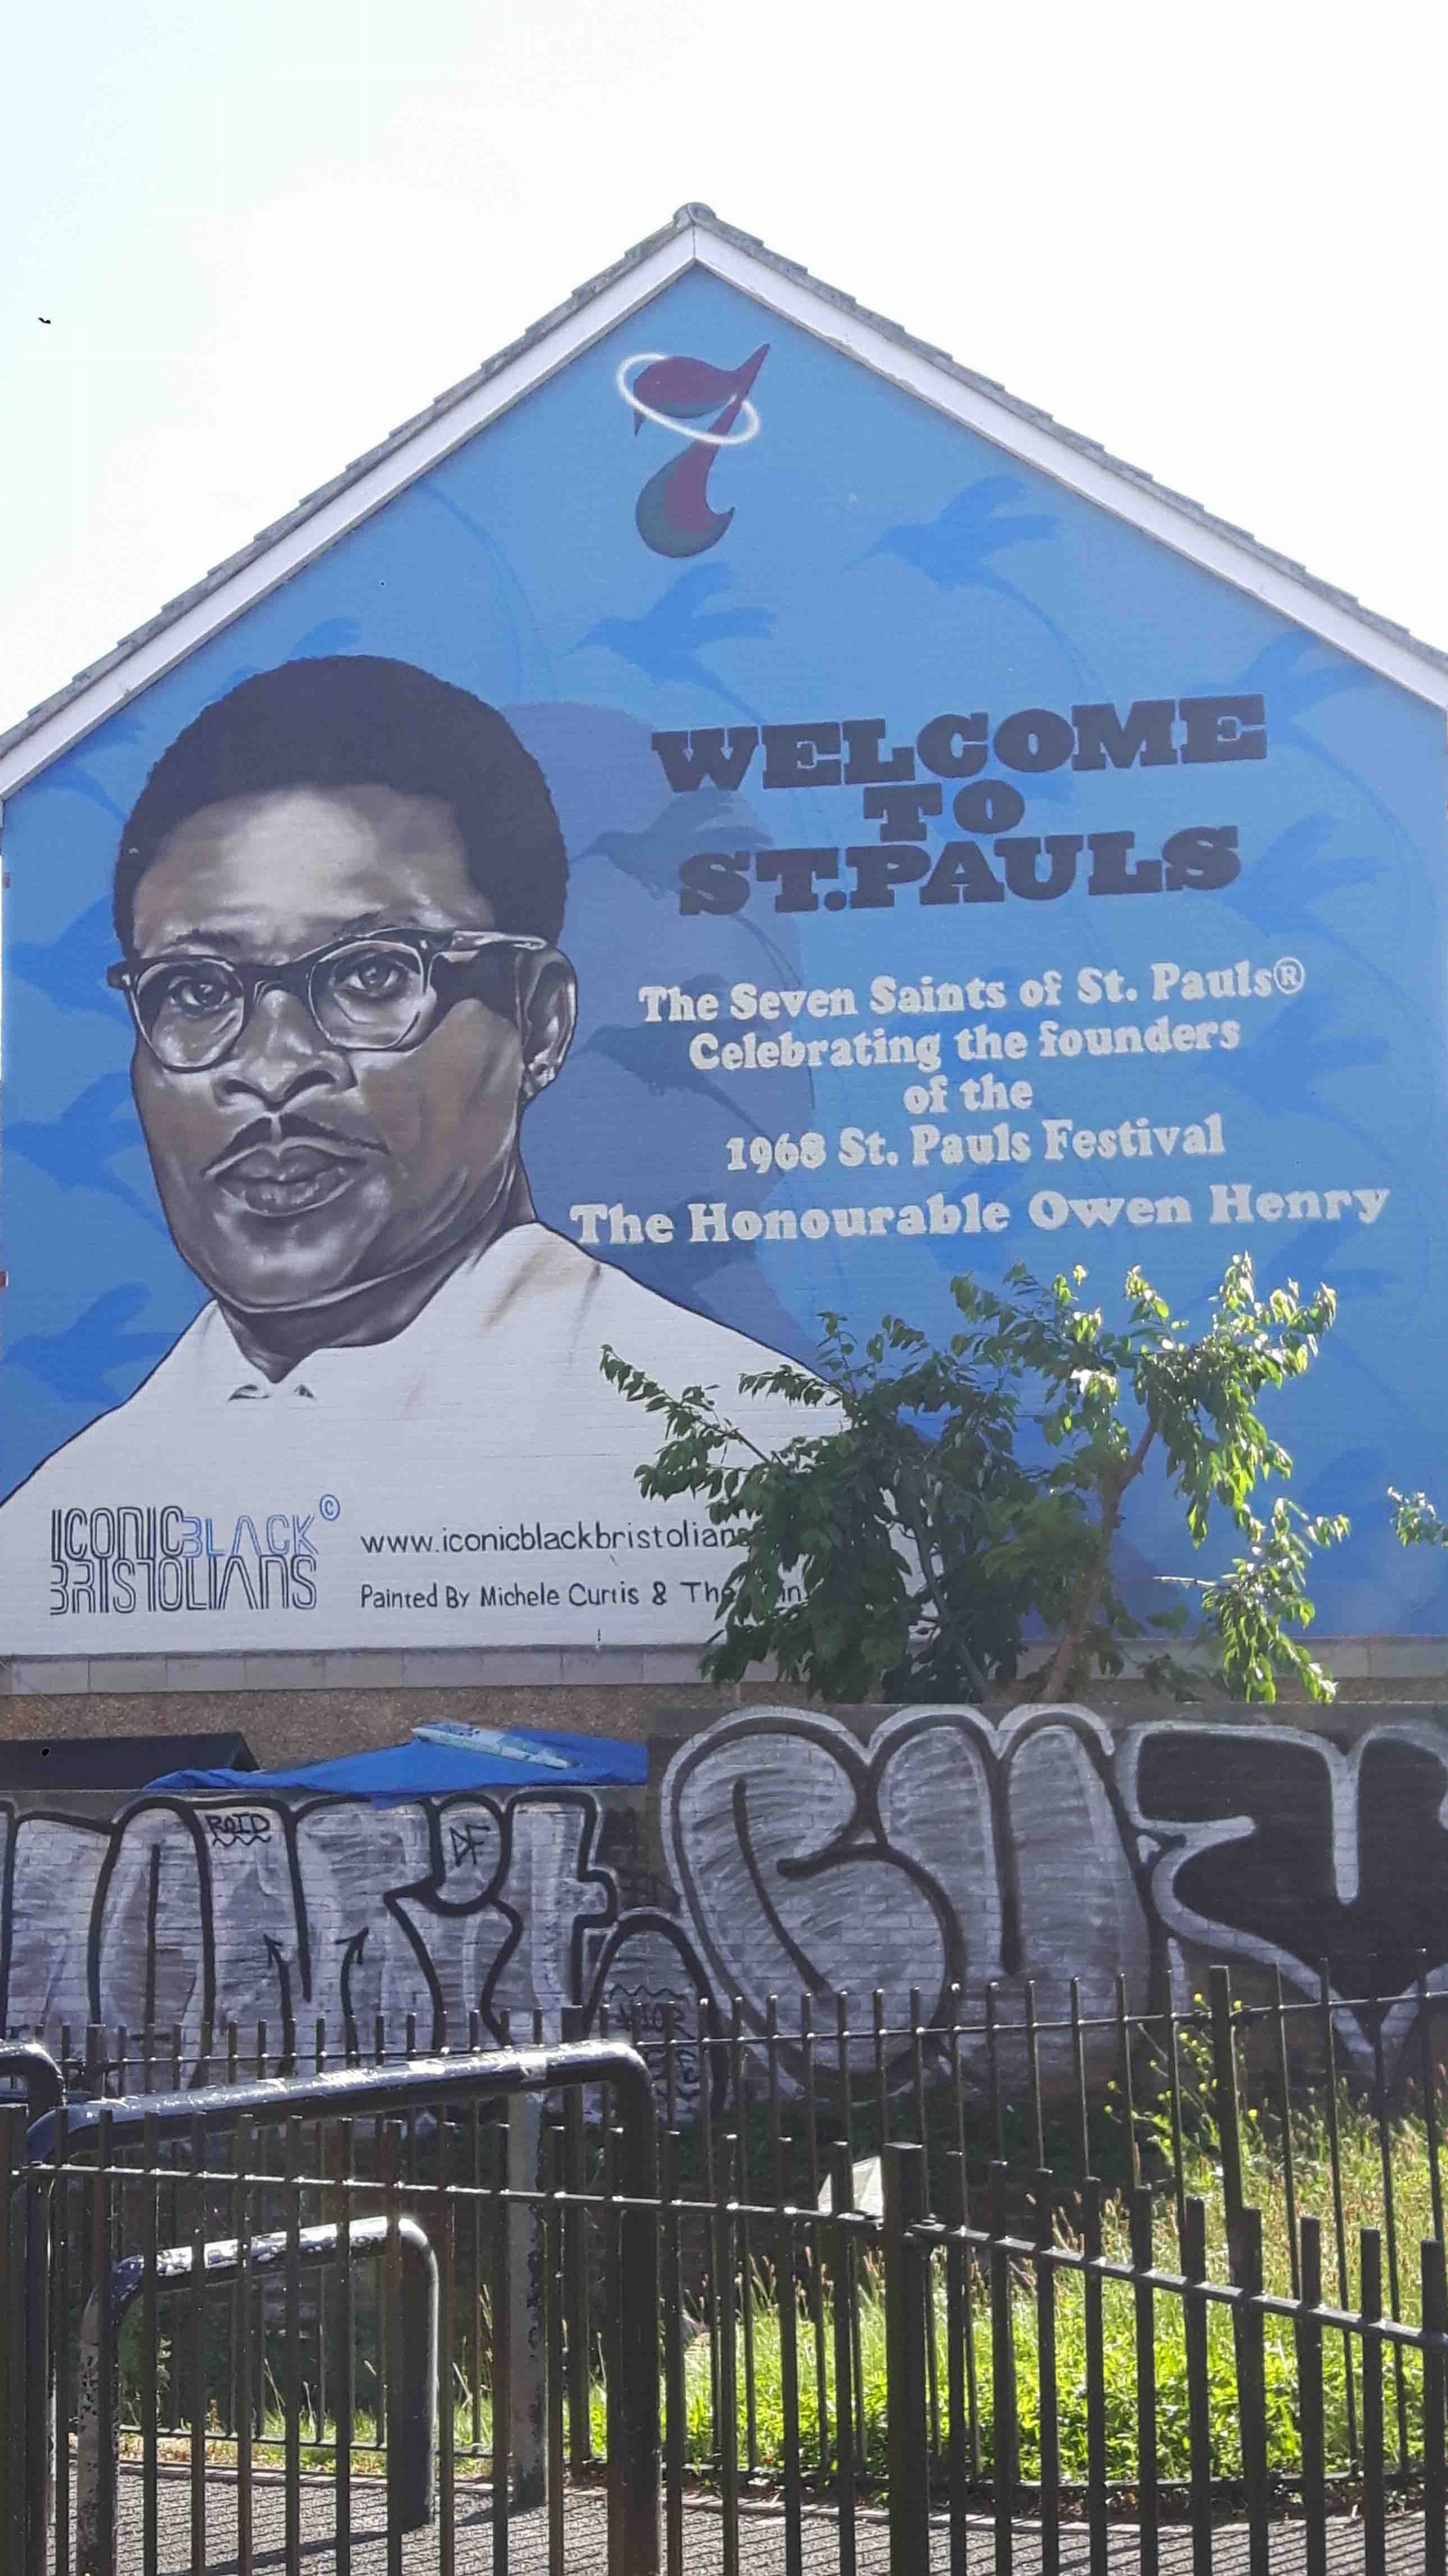 Graffiti image of Owen Henry who was connected with the Bristol Bus Boycott and setting up St. Paul's Carnival.